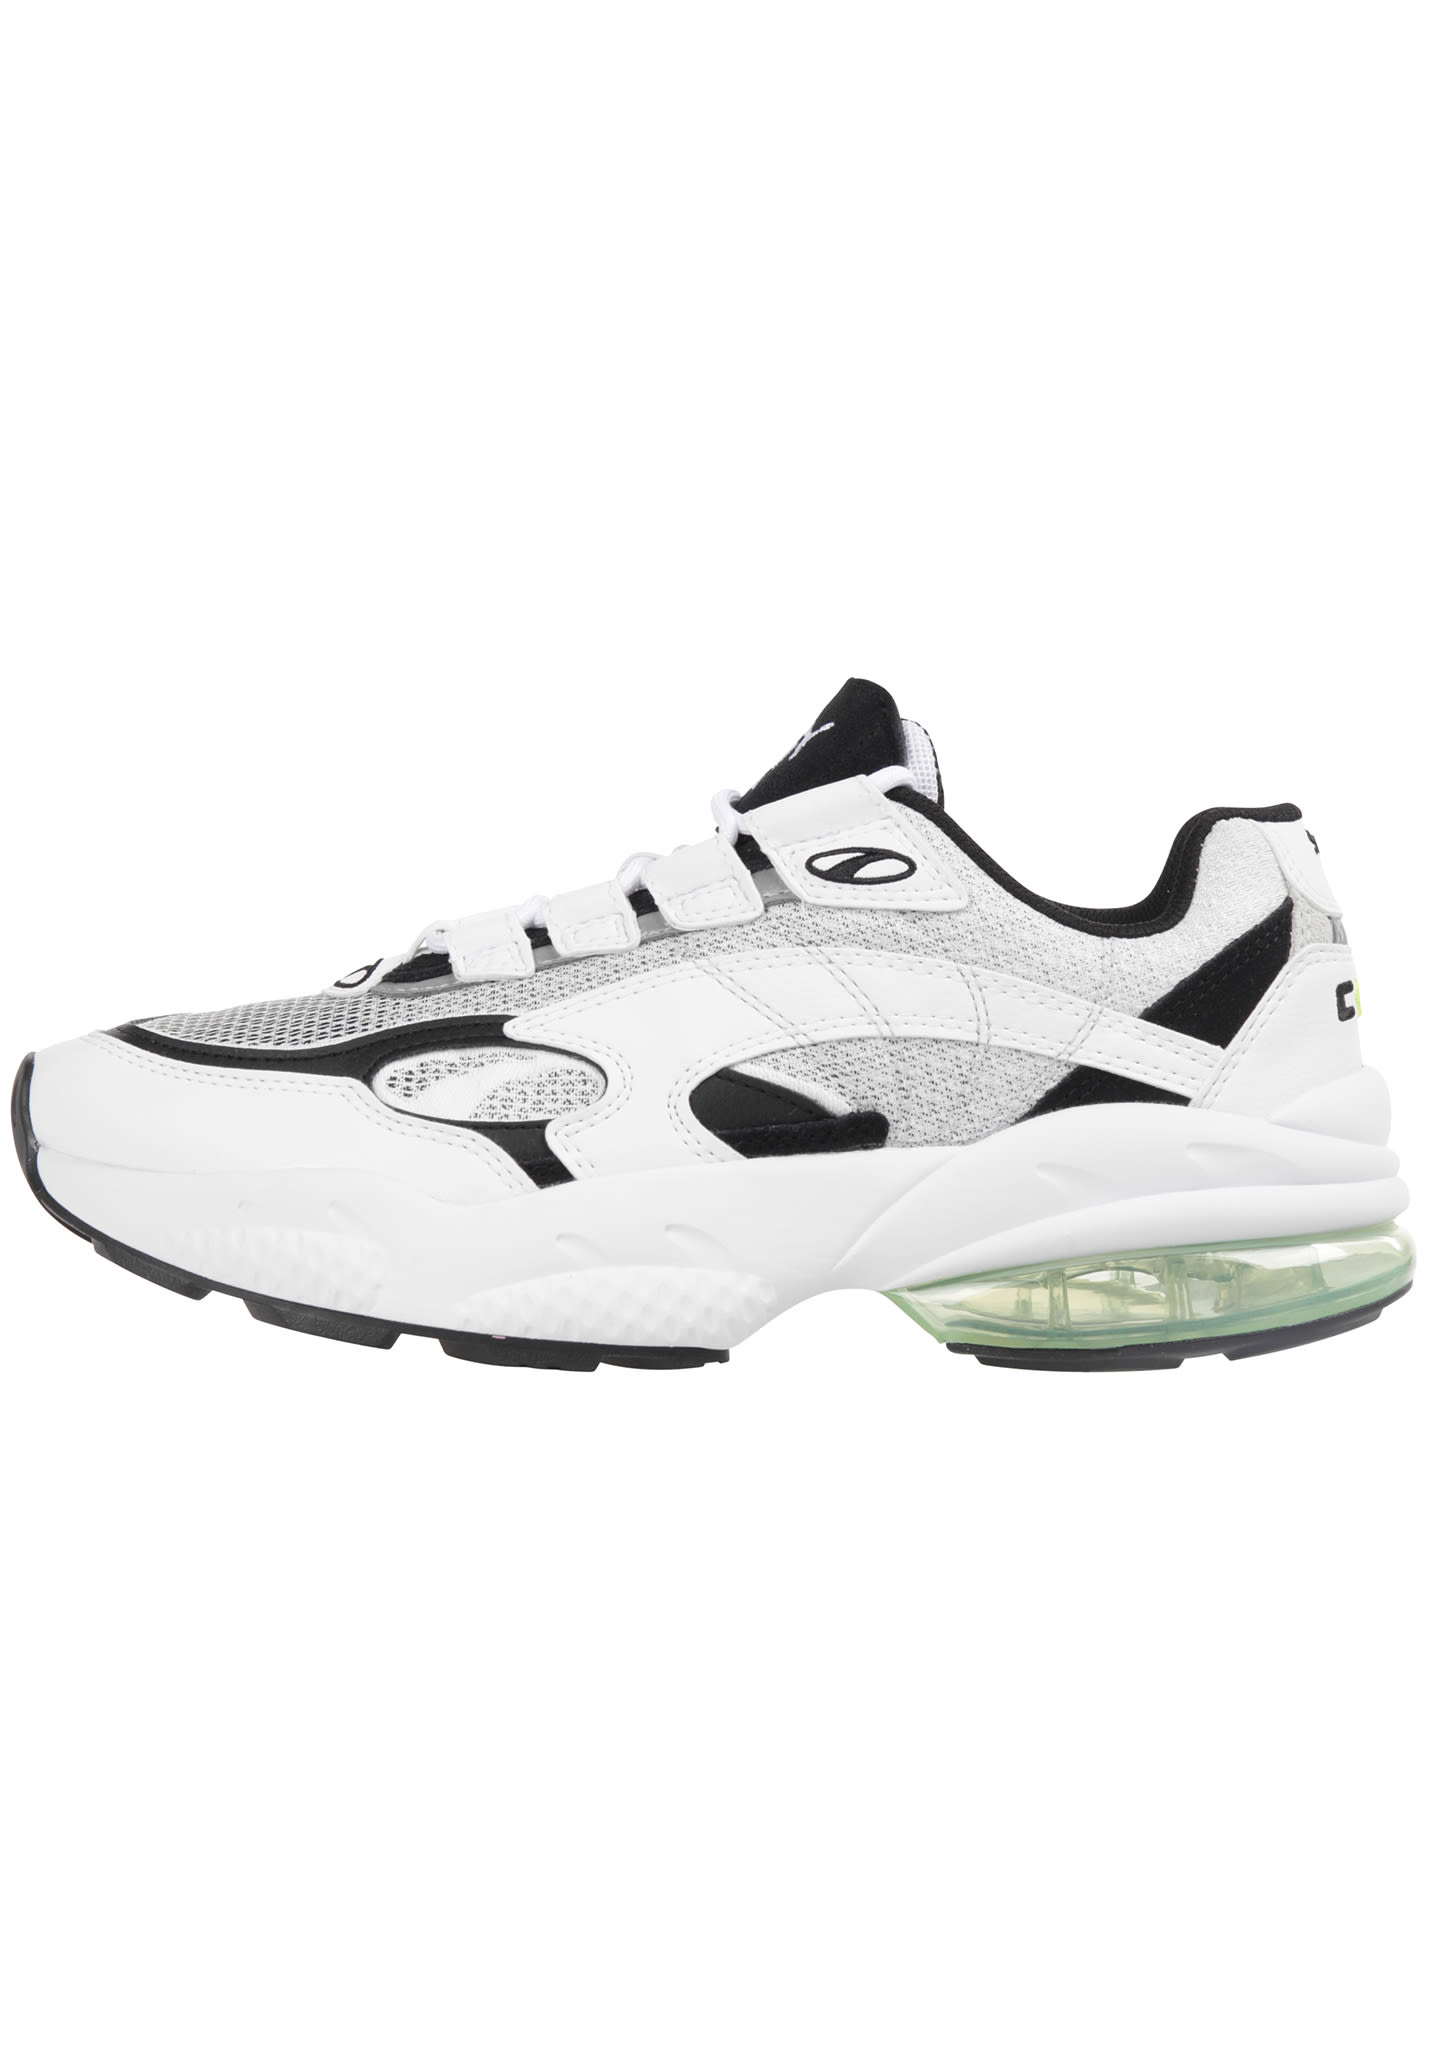 98a486542a7 Puma Cell Venom Alert - Sneakers for Men - White - Planet Sports